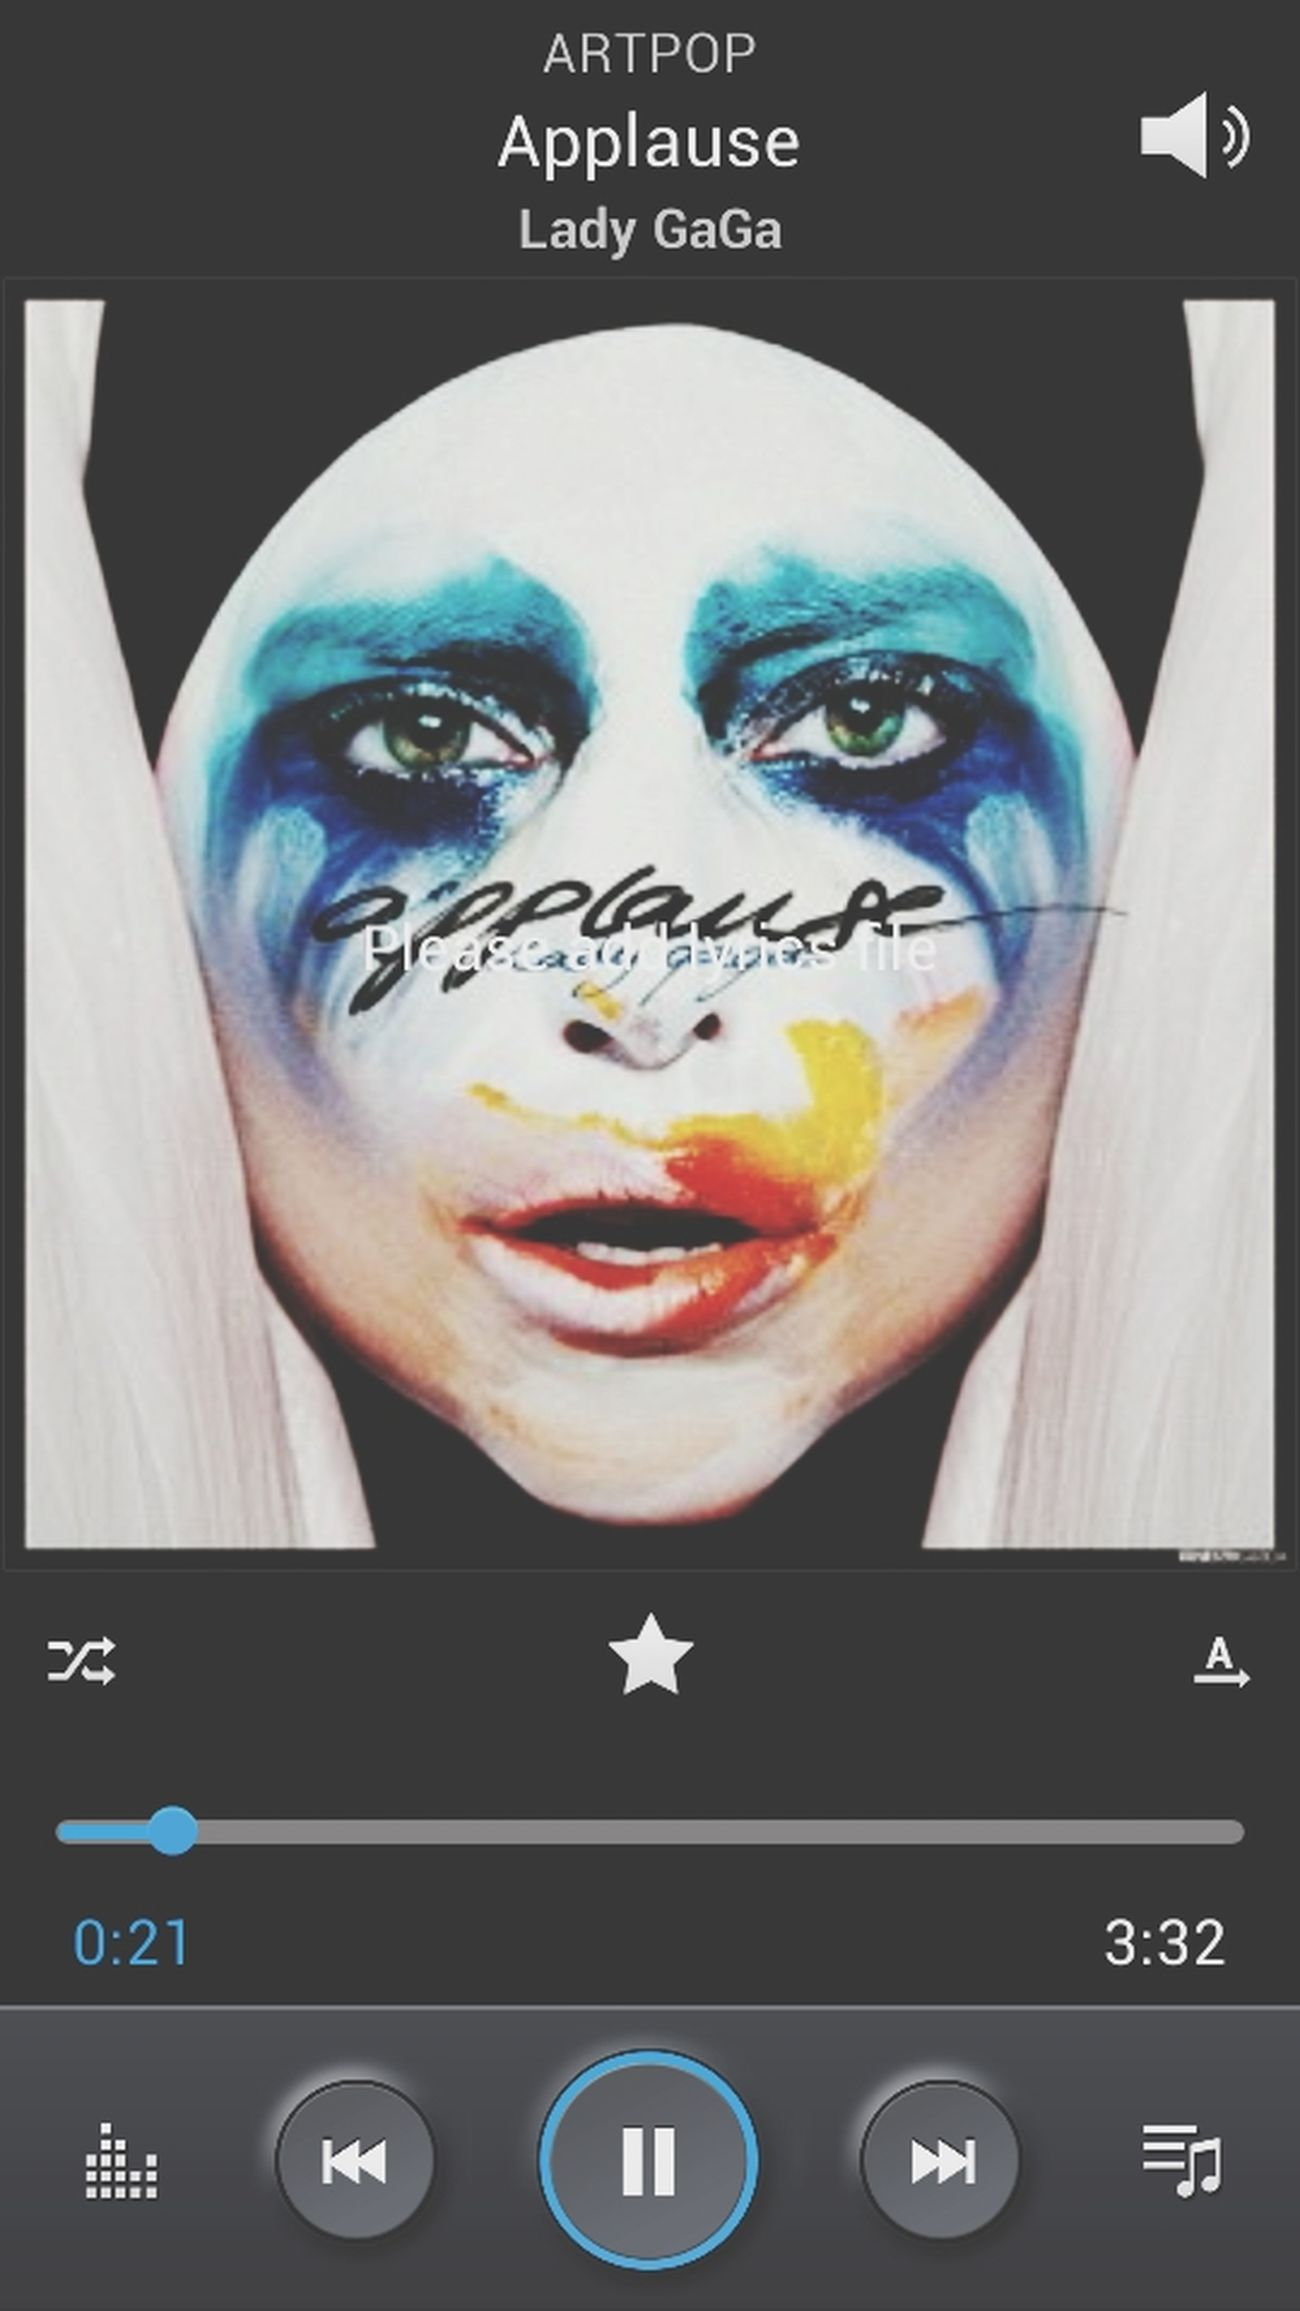 Lady Gaga ArtPop Gaga-applause Musicplayin'